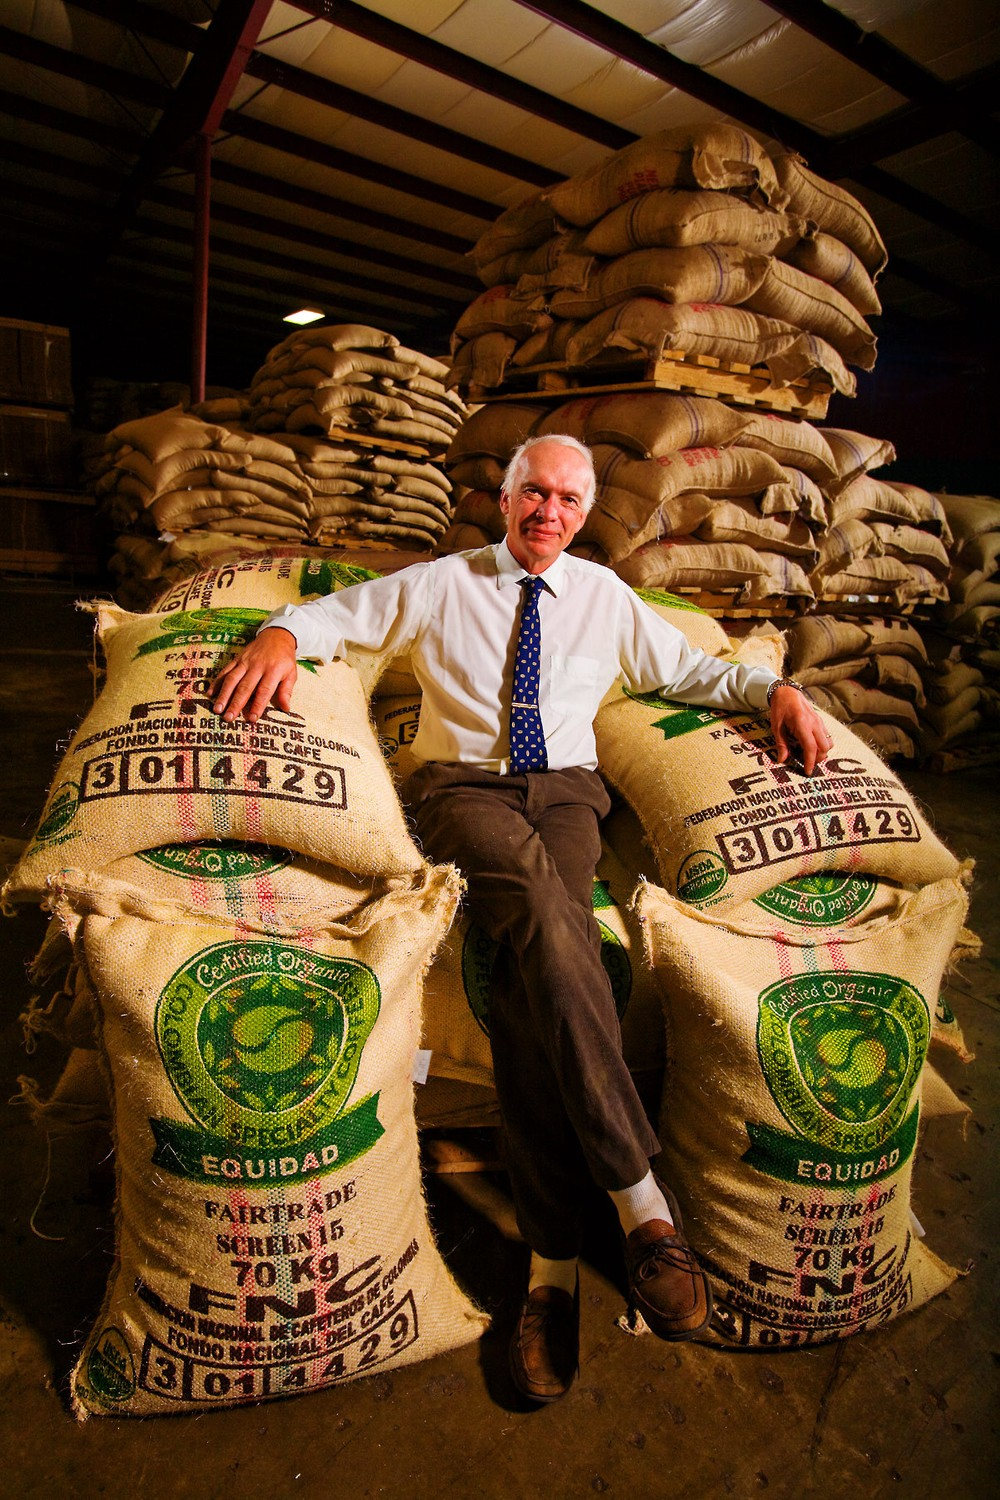 Timothy Tulloch CEO and Founder of European Roasterie, Inc.